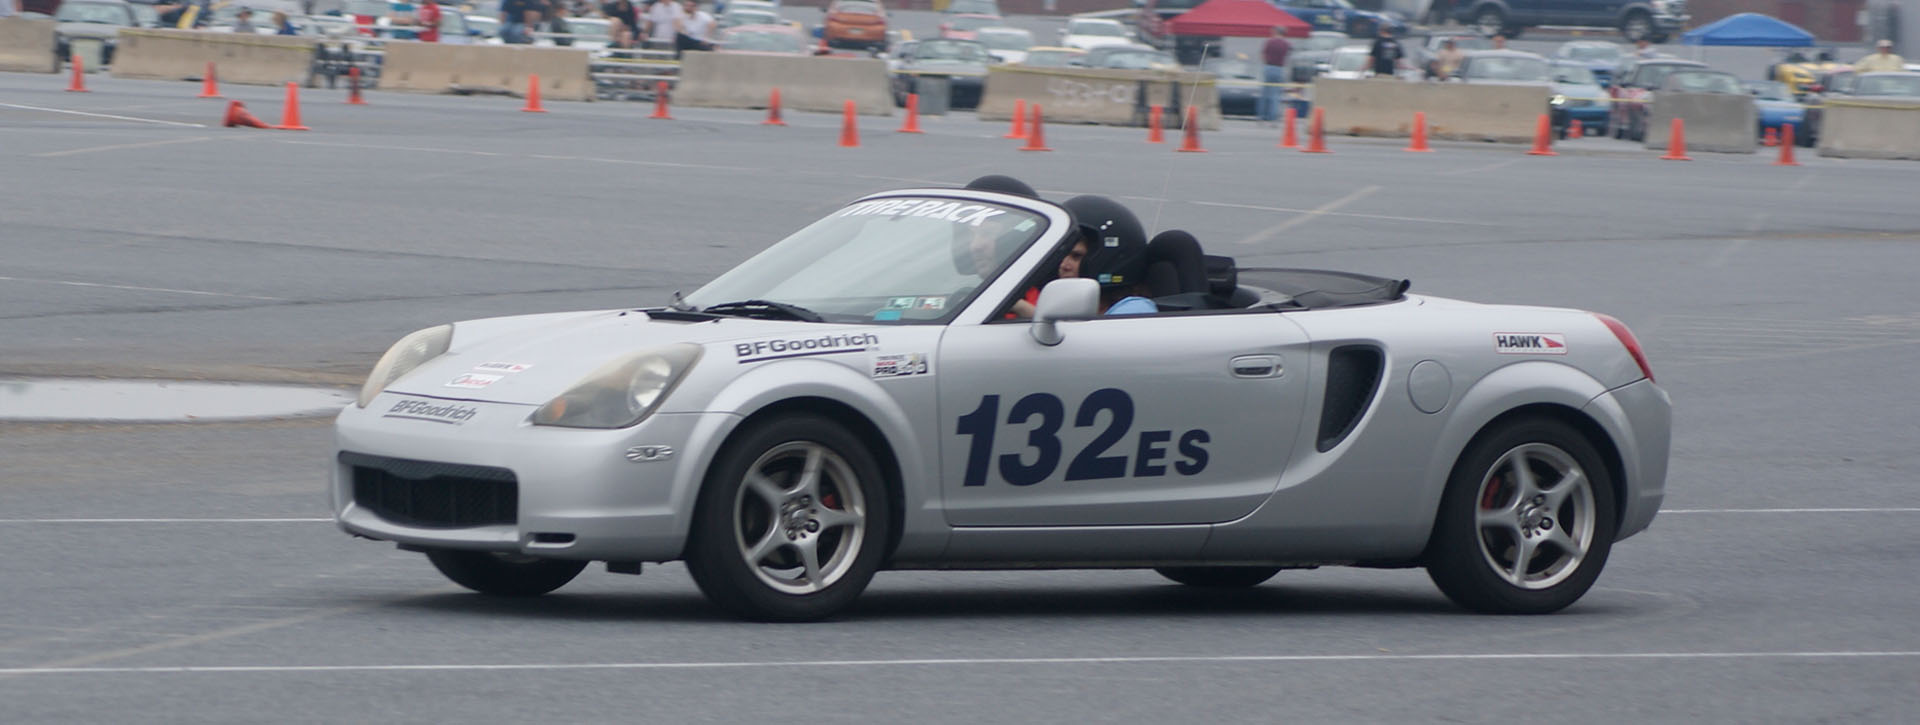 <p>Name: Melissa Mauro From: Harrisburg, PA Runs: Autocross Drives: 2001 Toyota MR2 MemberSince: 2016 If you have been to any of the Susquehanna Region's AutoCross events in 2017, you likely ran into Melissa at registration. If you haven't run into her yet you will soon. Starting this month Melissa is [&hellip;]</p>